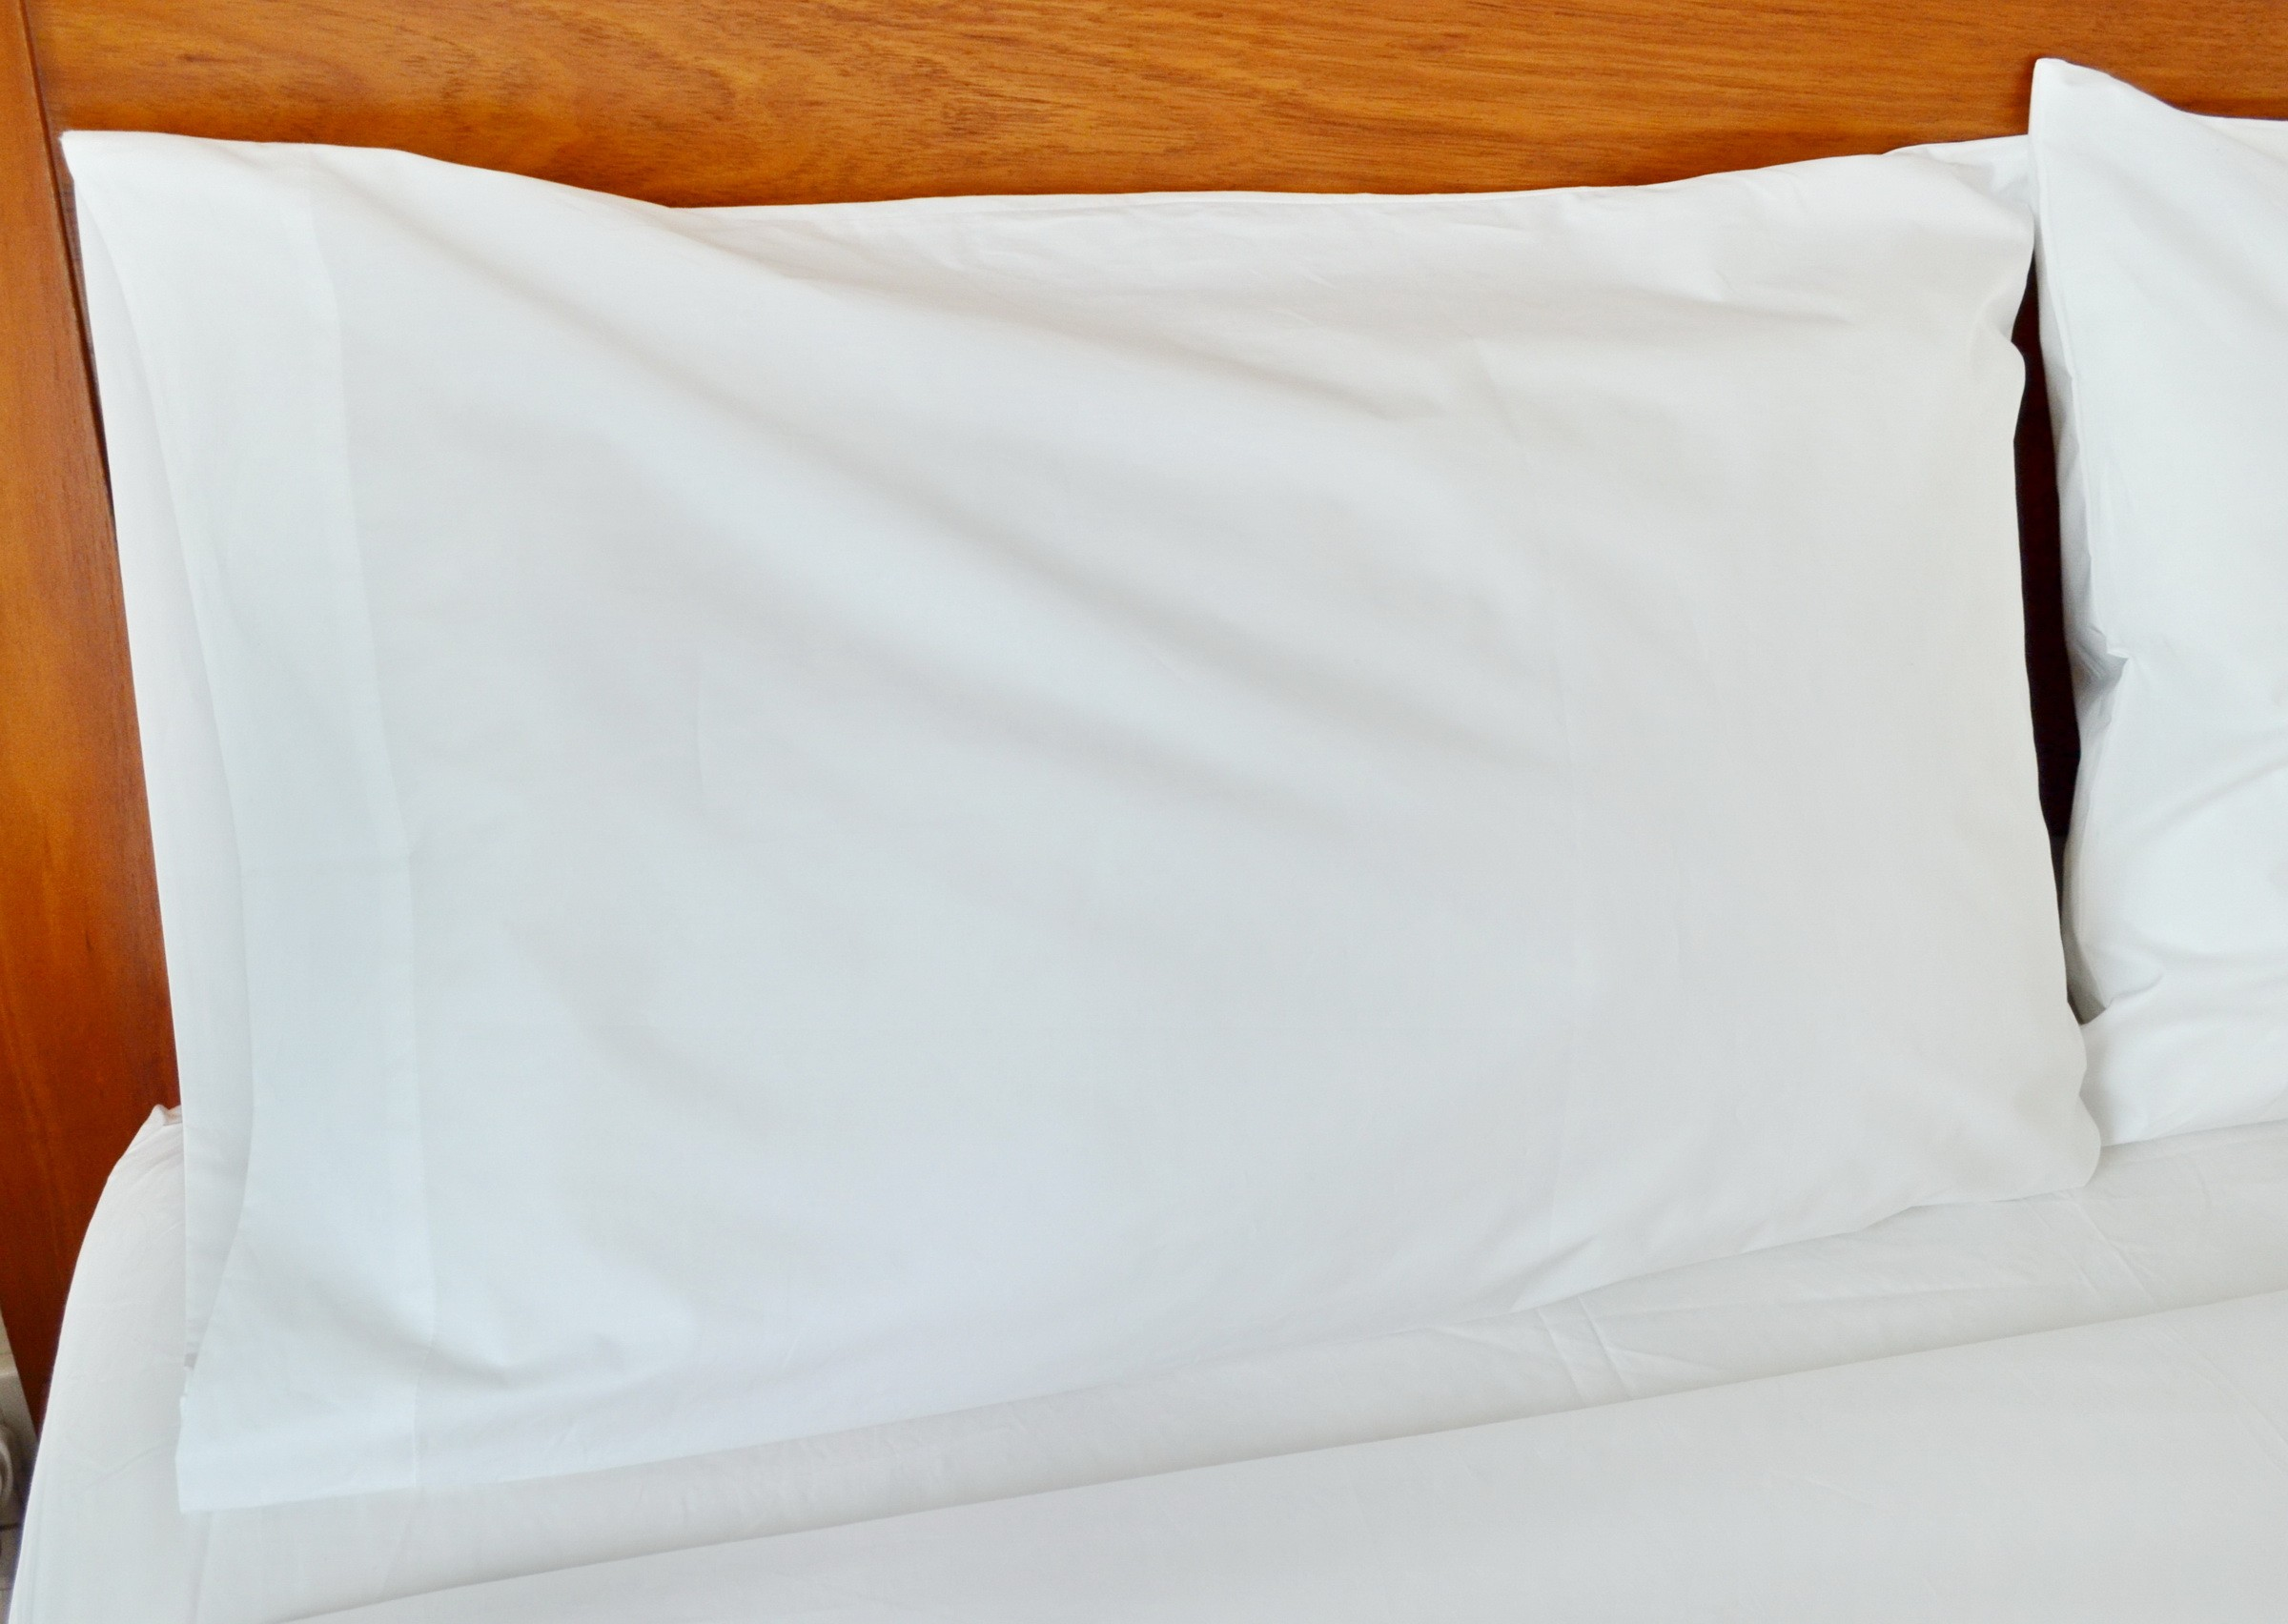 commercial superfine percale cotton pillowcases